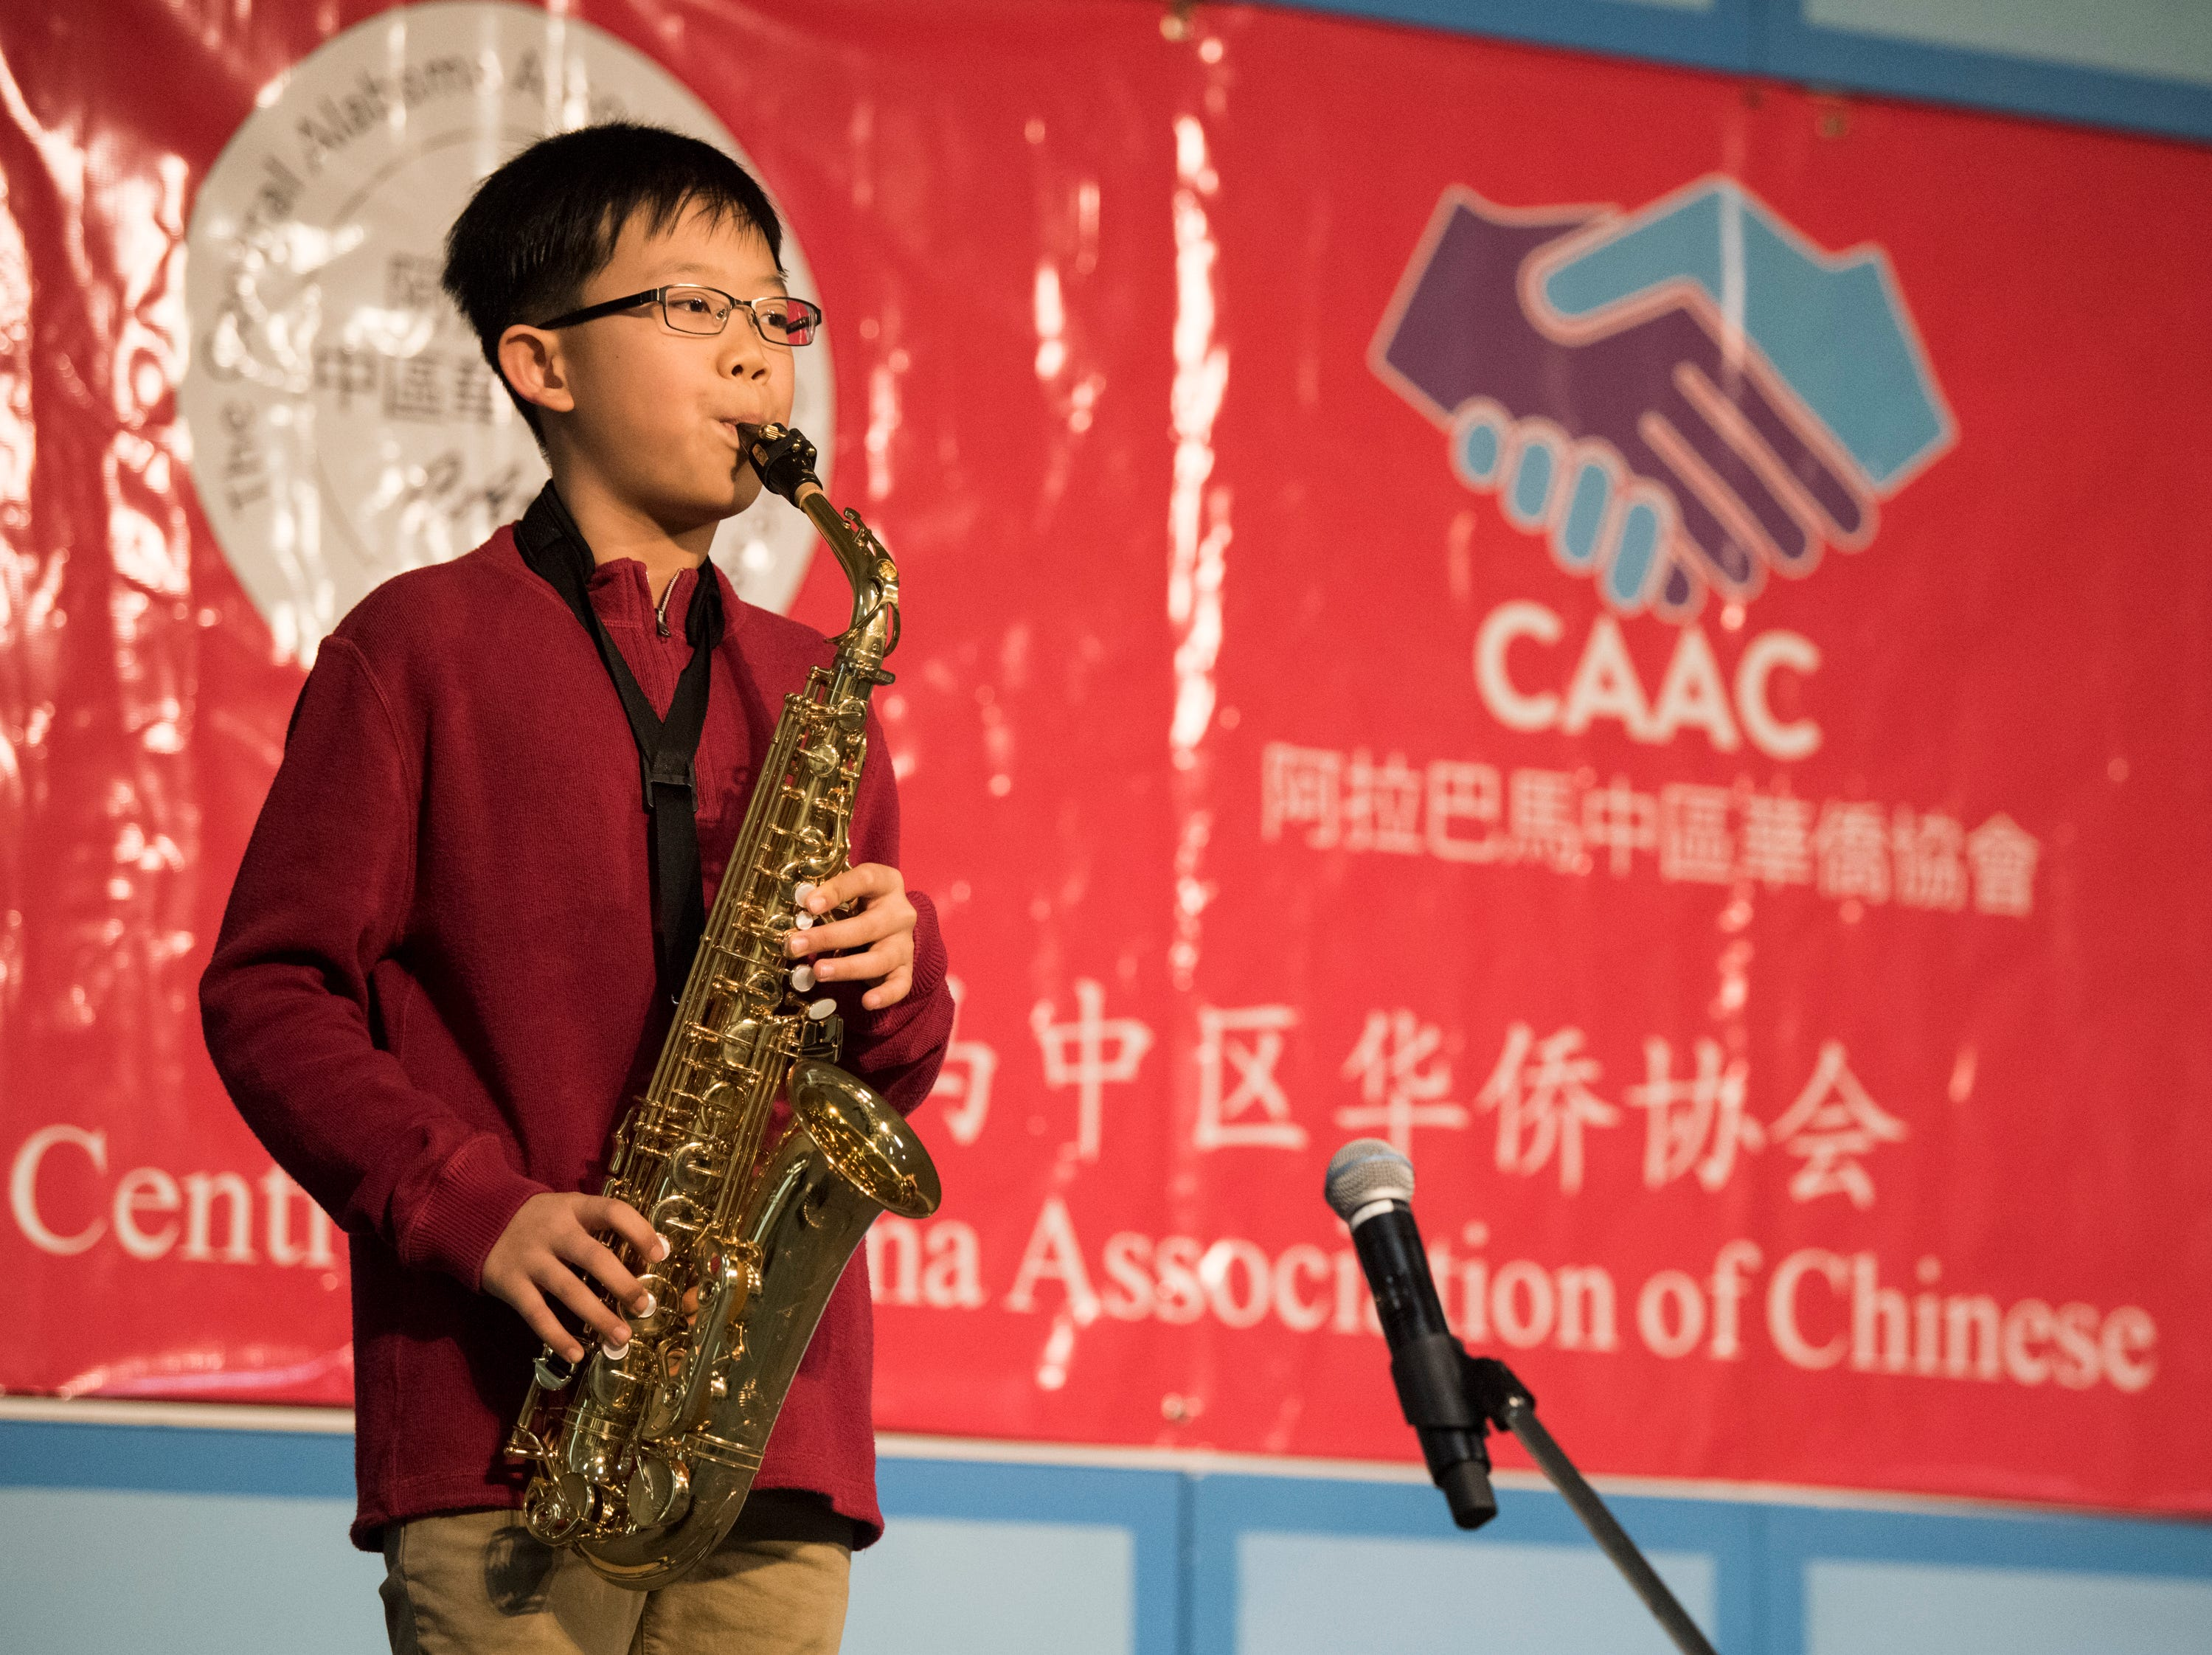 Edwin Chen performs during the Central Alabama Association of Chinese 2019 Montgomery Chinese New Year festsival at Frazer Church in Montgomery, Ala., on Saturday, Feb. 9, 2019.